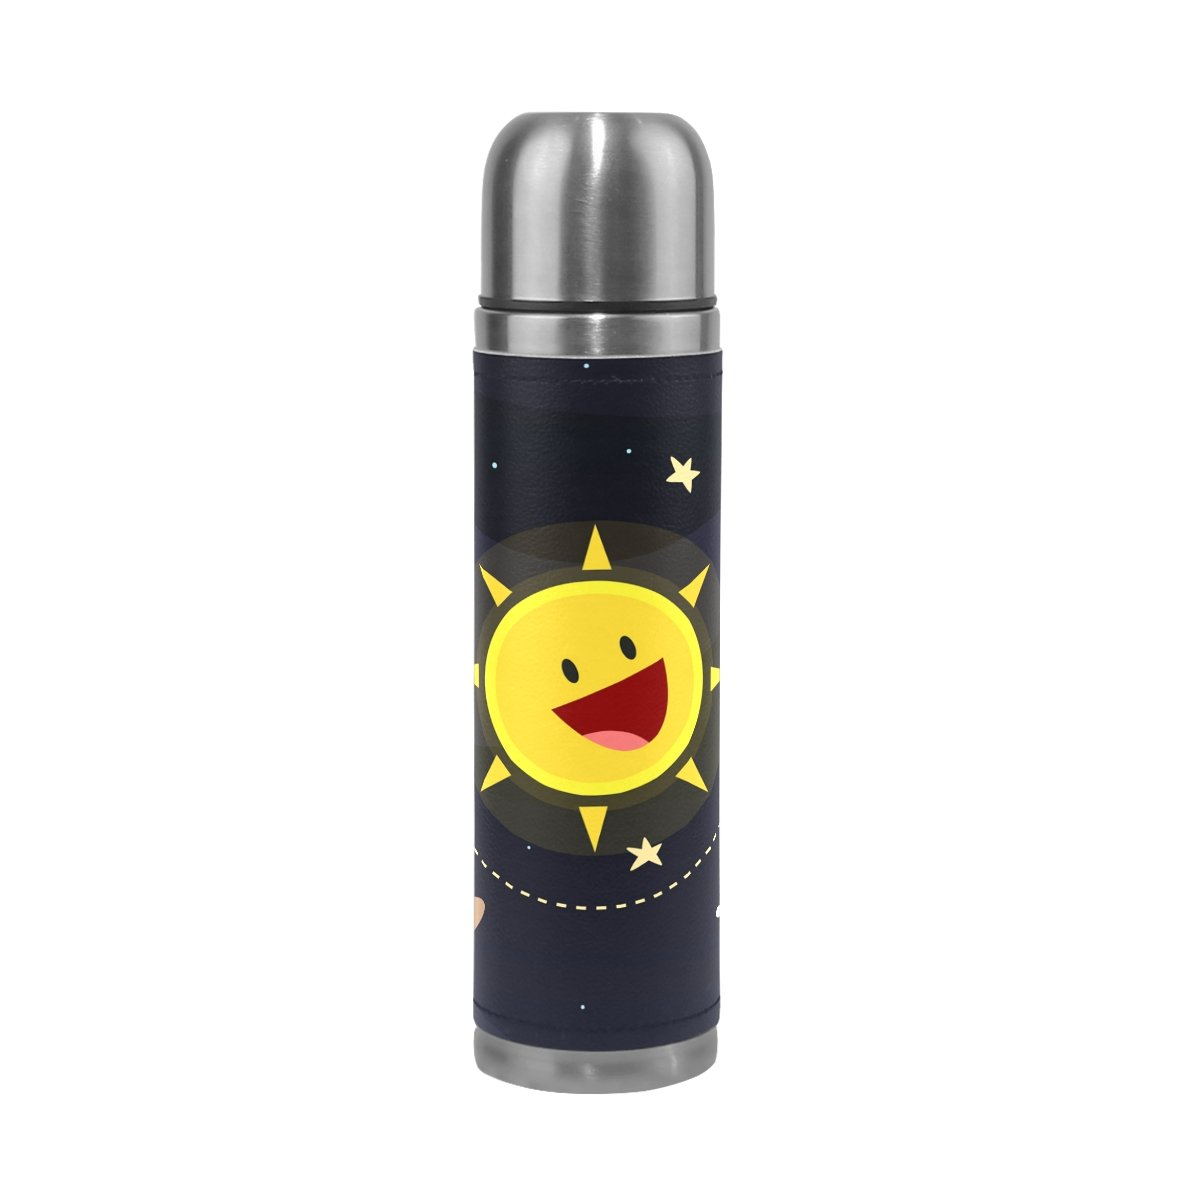 XinMing Solar System Planet Stainless Steel Water Bottle Insulated Vacuum Cup 14oz Double Walled Thermos for Sport Events